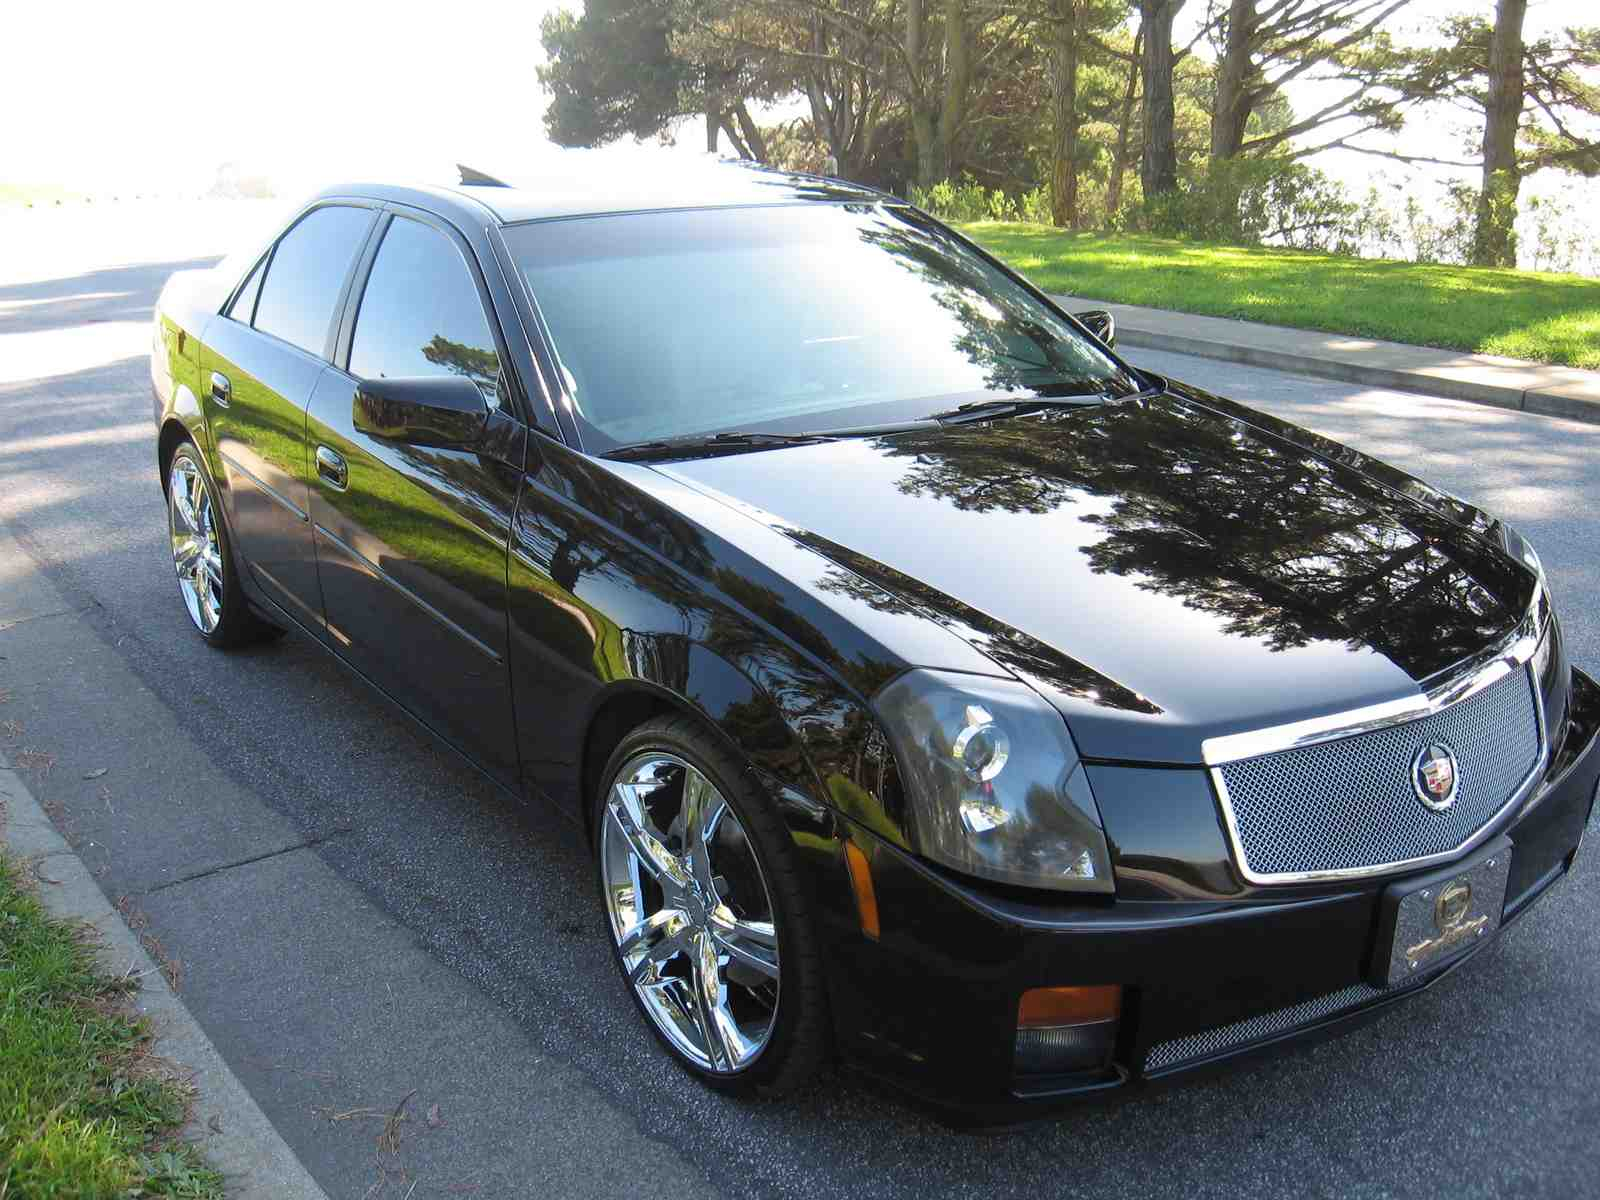 2003 cadillac cts owners manual free